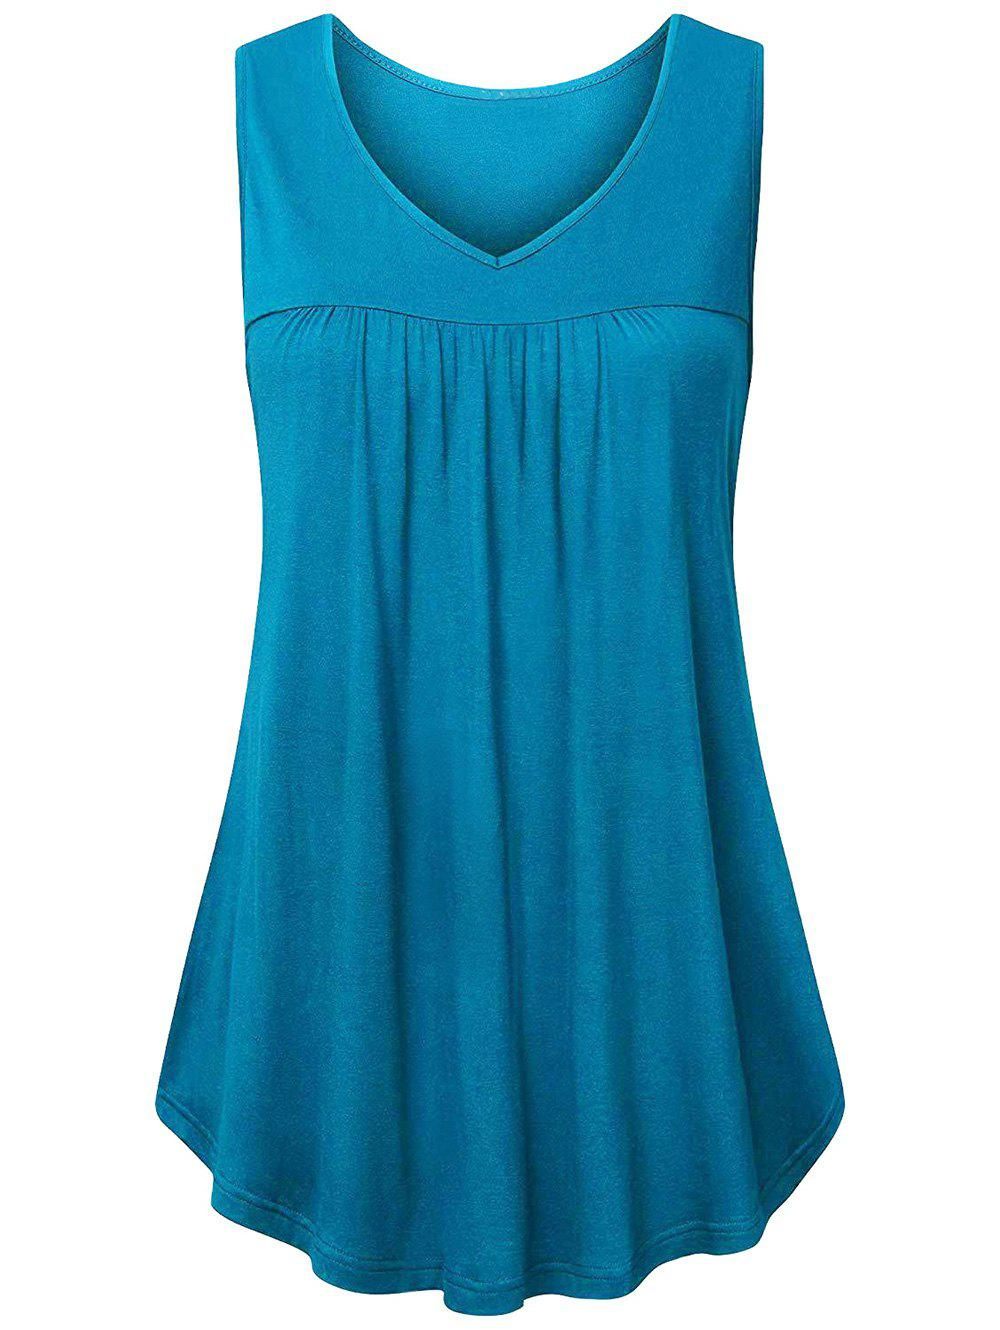 Solid Tank Top - BLUE IVY 2XL